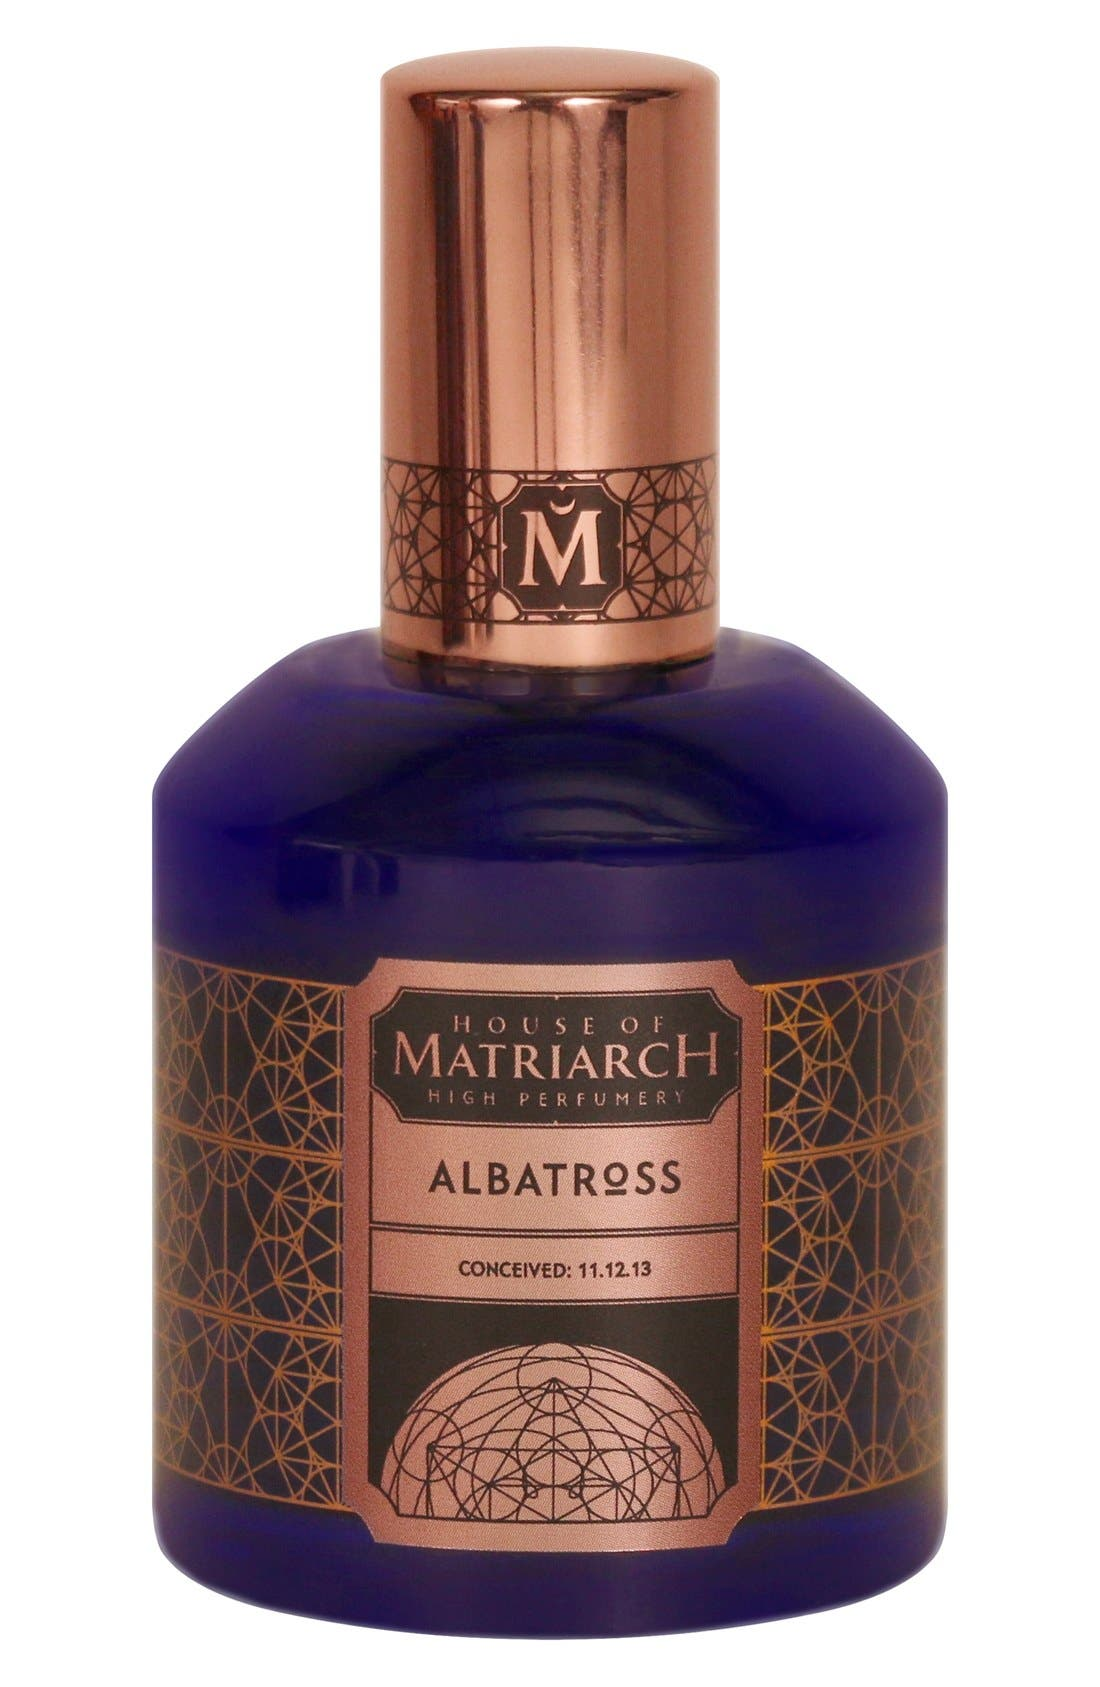 House of Matriarch 'Albatross' Fragrance (Nordstrom Exclusive)